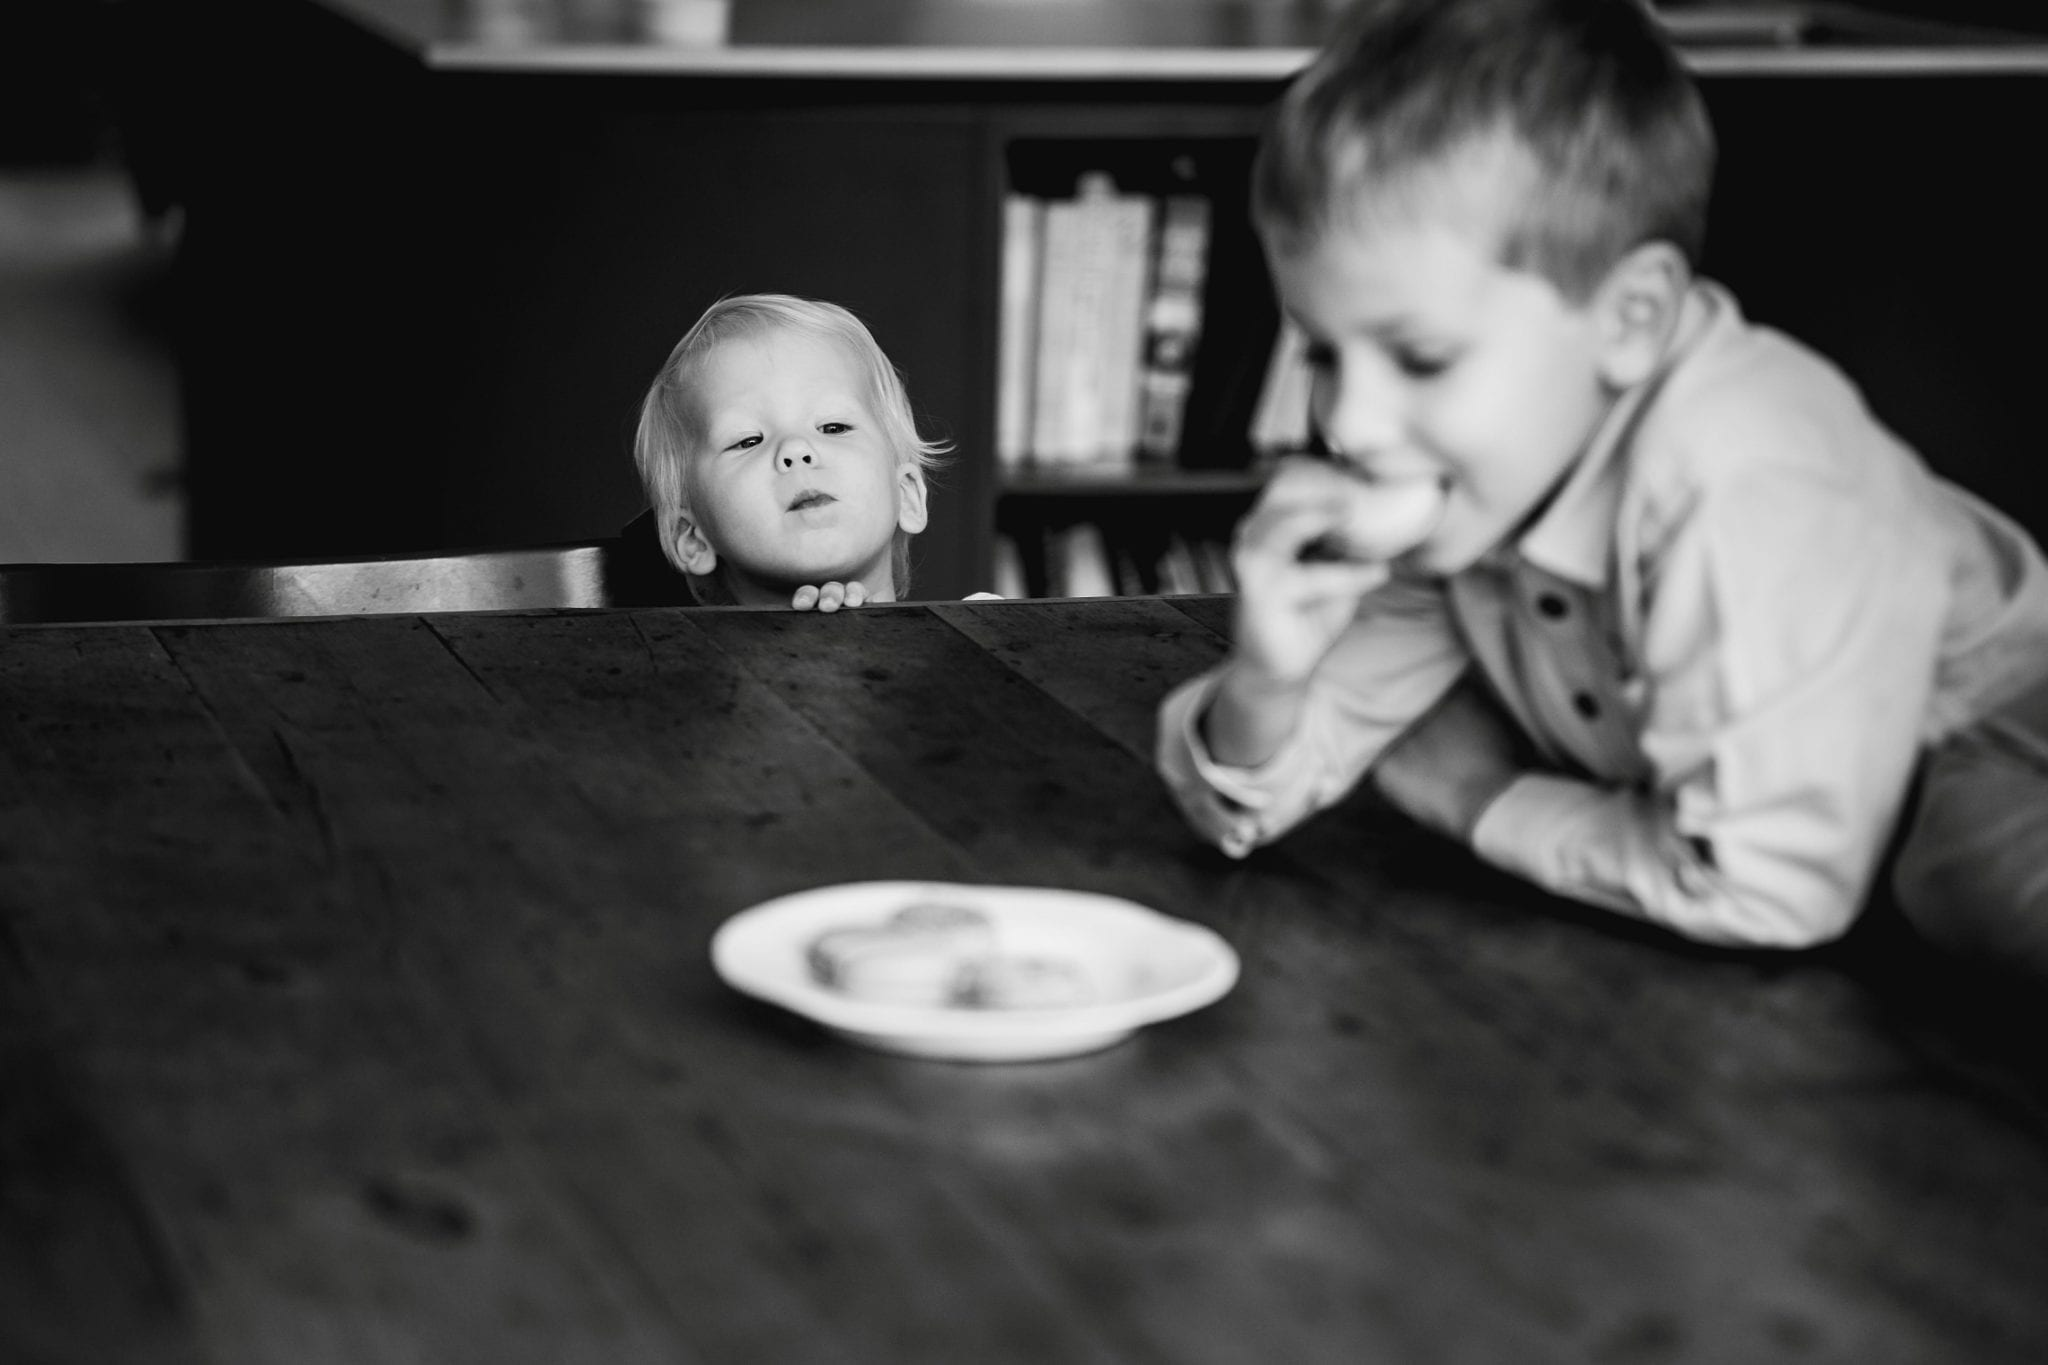 family Life Session - Little boy looking over the table at a biscuit